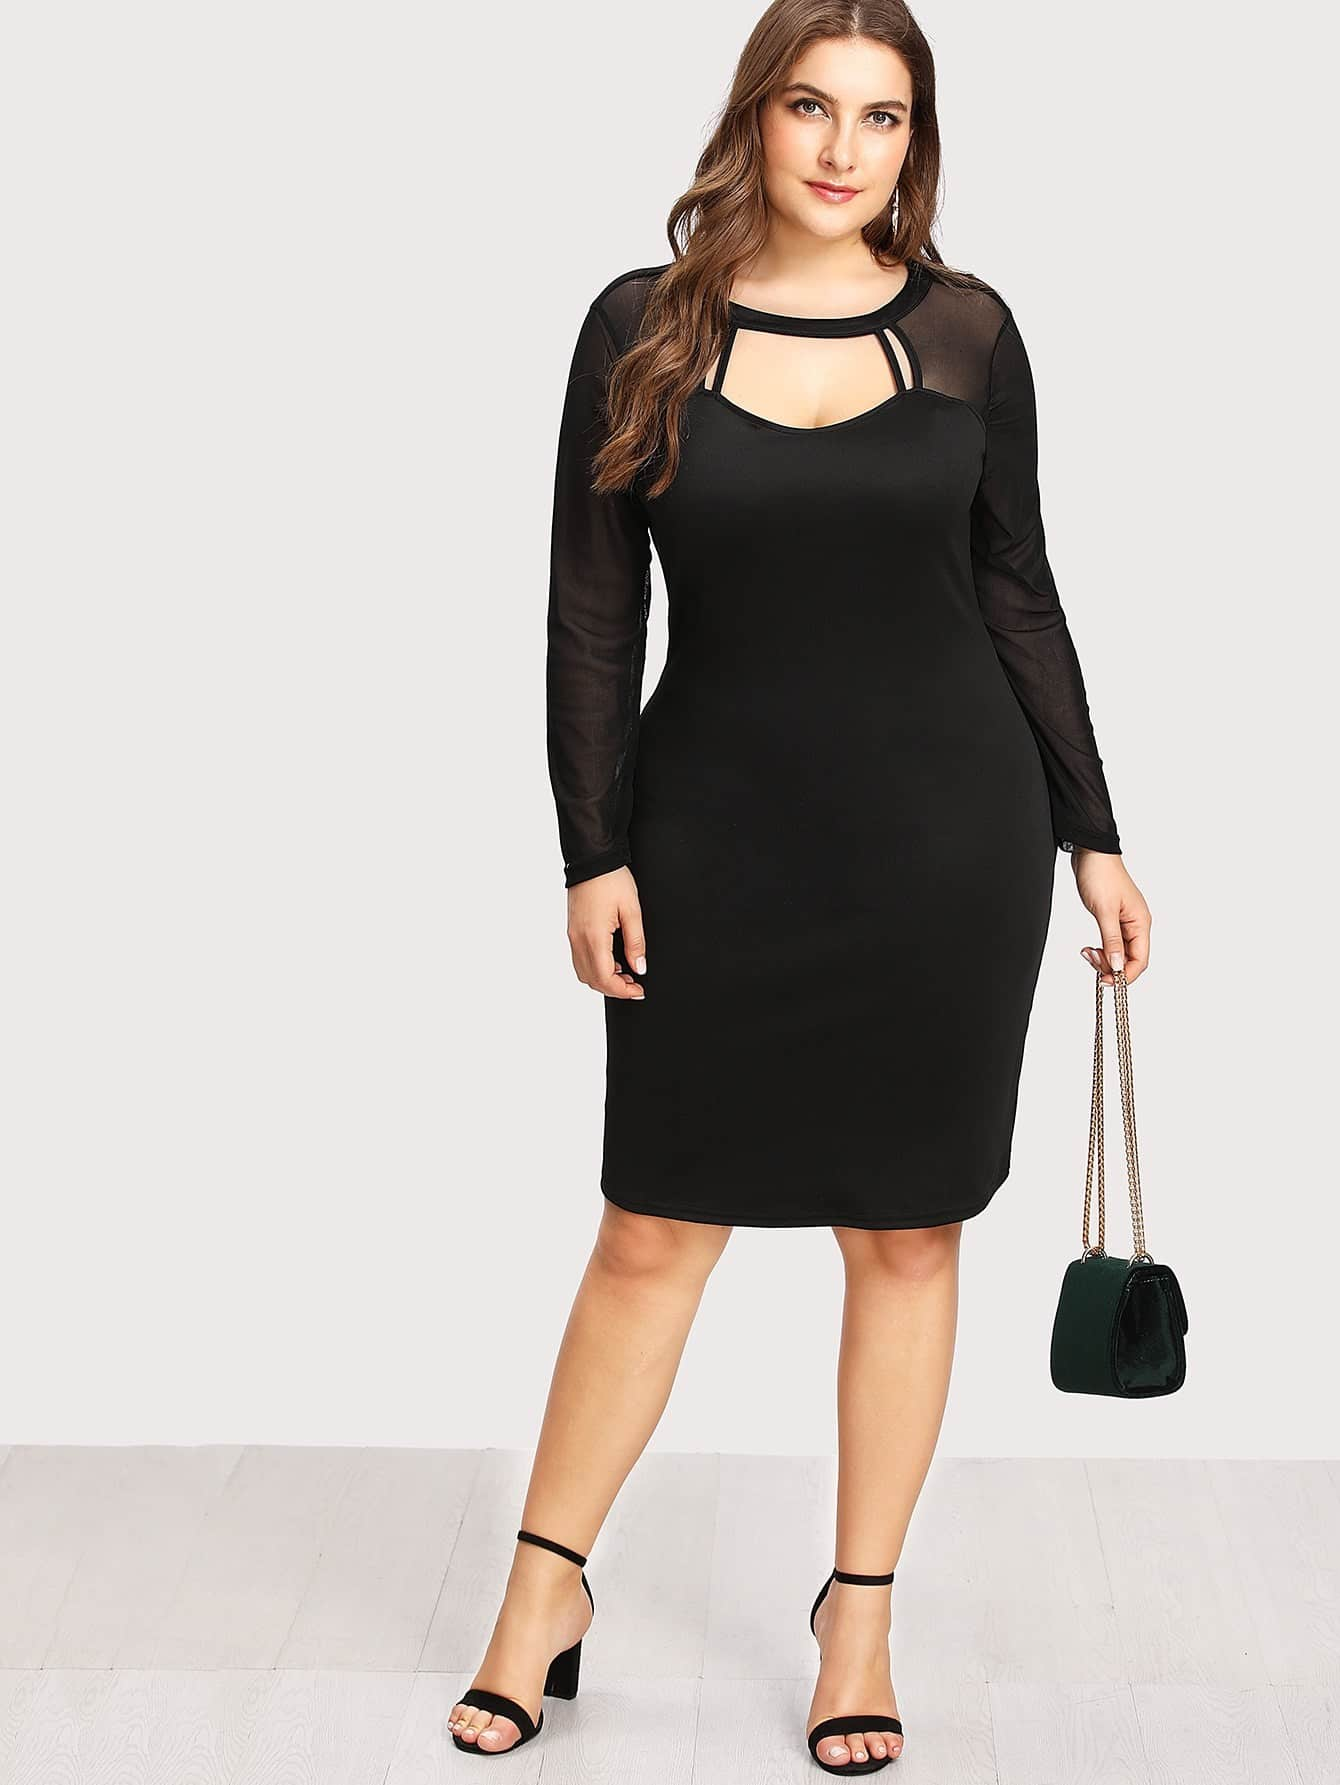 Cut Out Front Mesh Contrast Dress cut out front mesh contrast dress